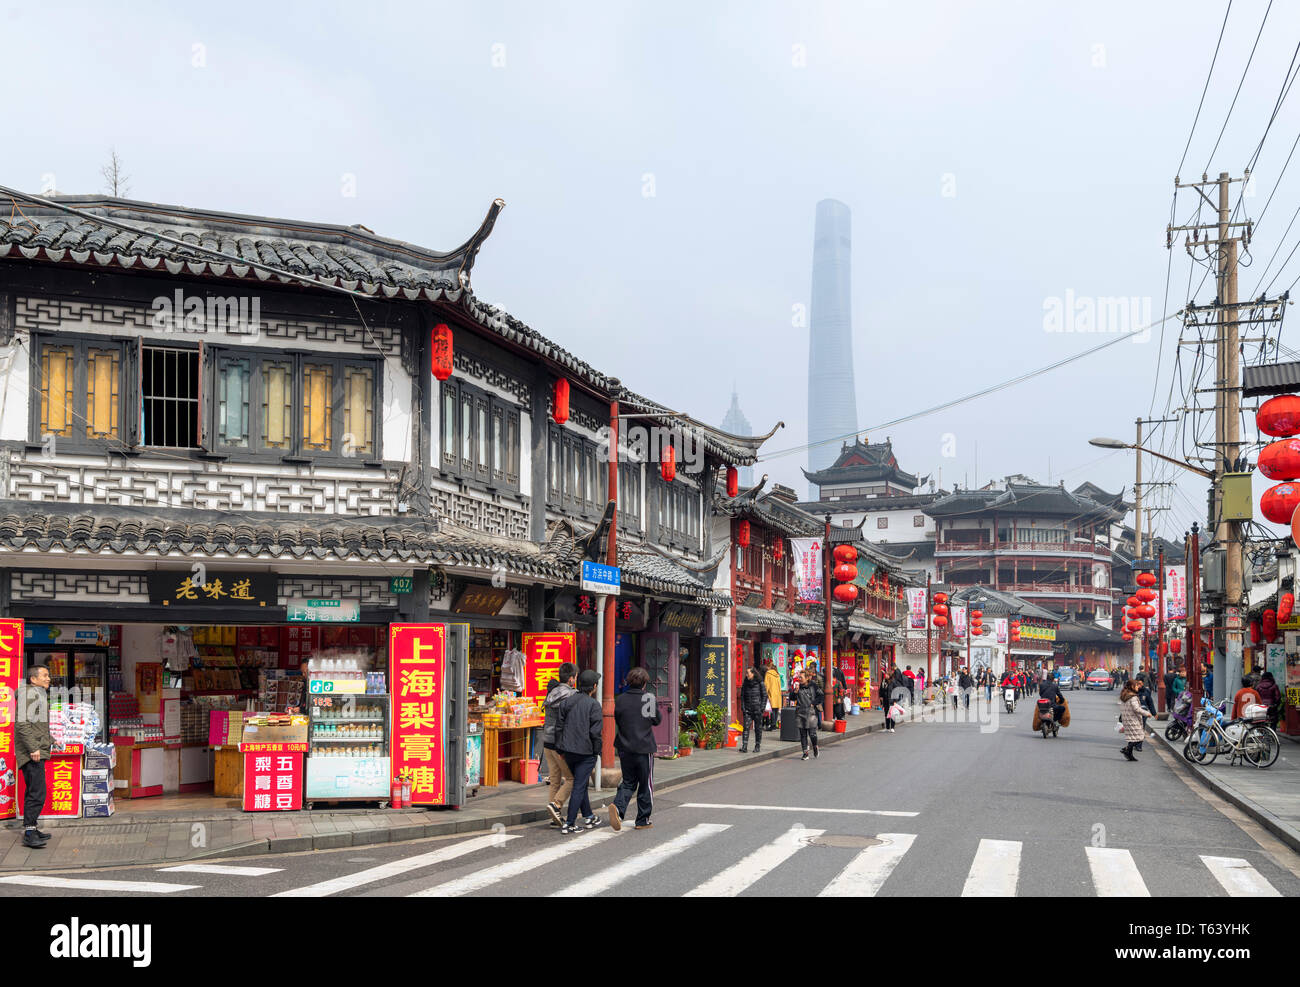 Traditional shops and restaurants on Middle Fangbang Road with the Shanghai Tower, just visible through the air pollution, Old Town, Shanghai, China - Stock Image